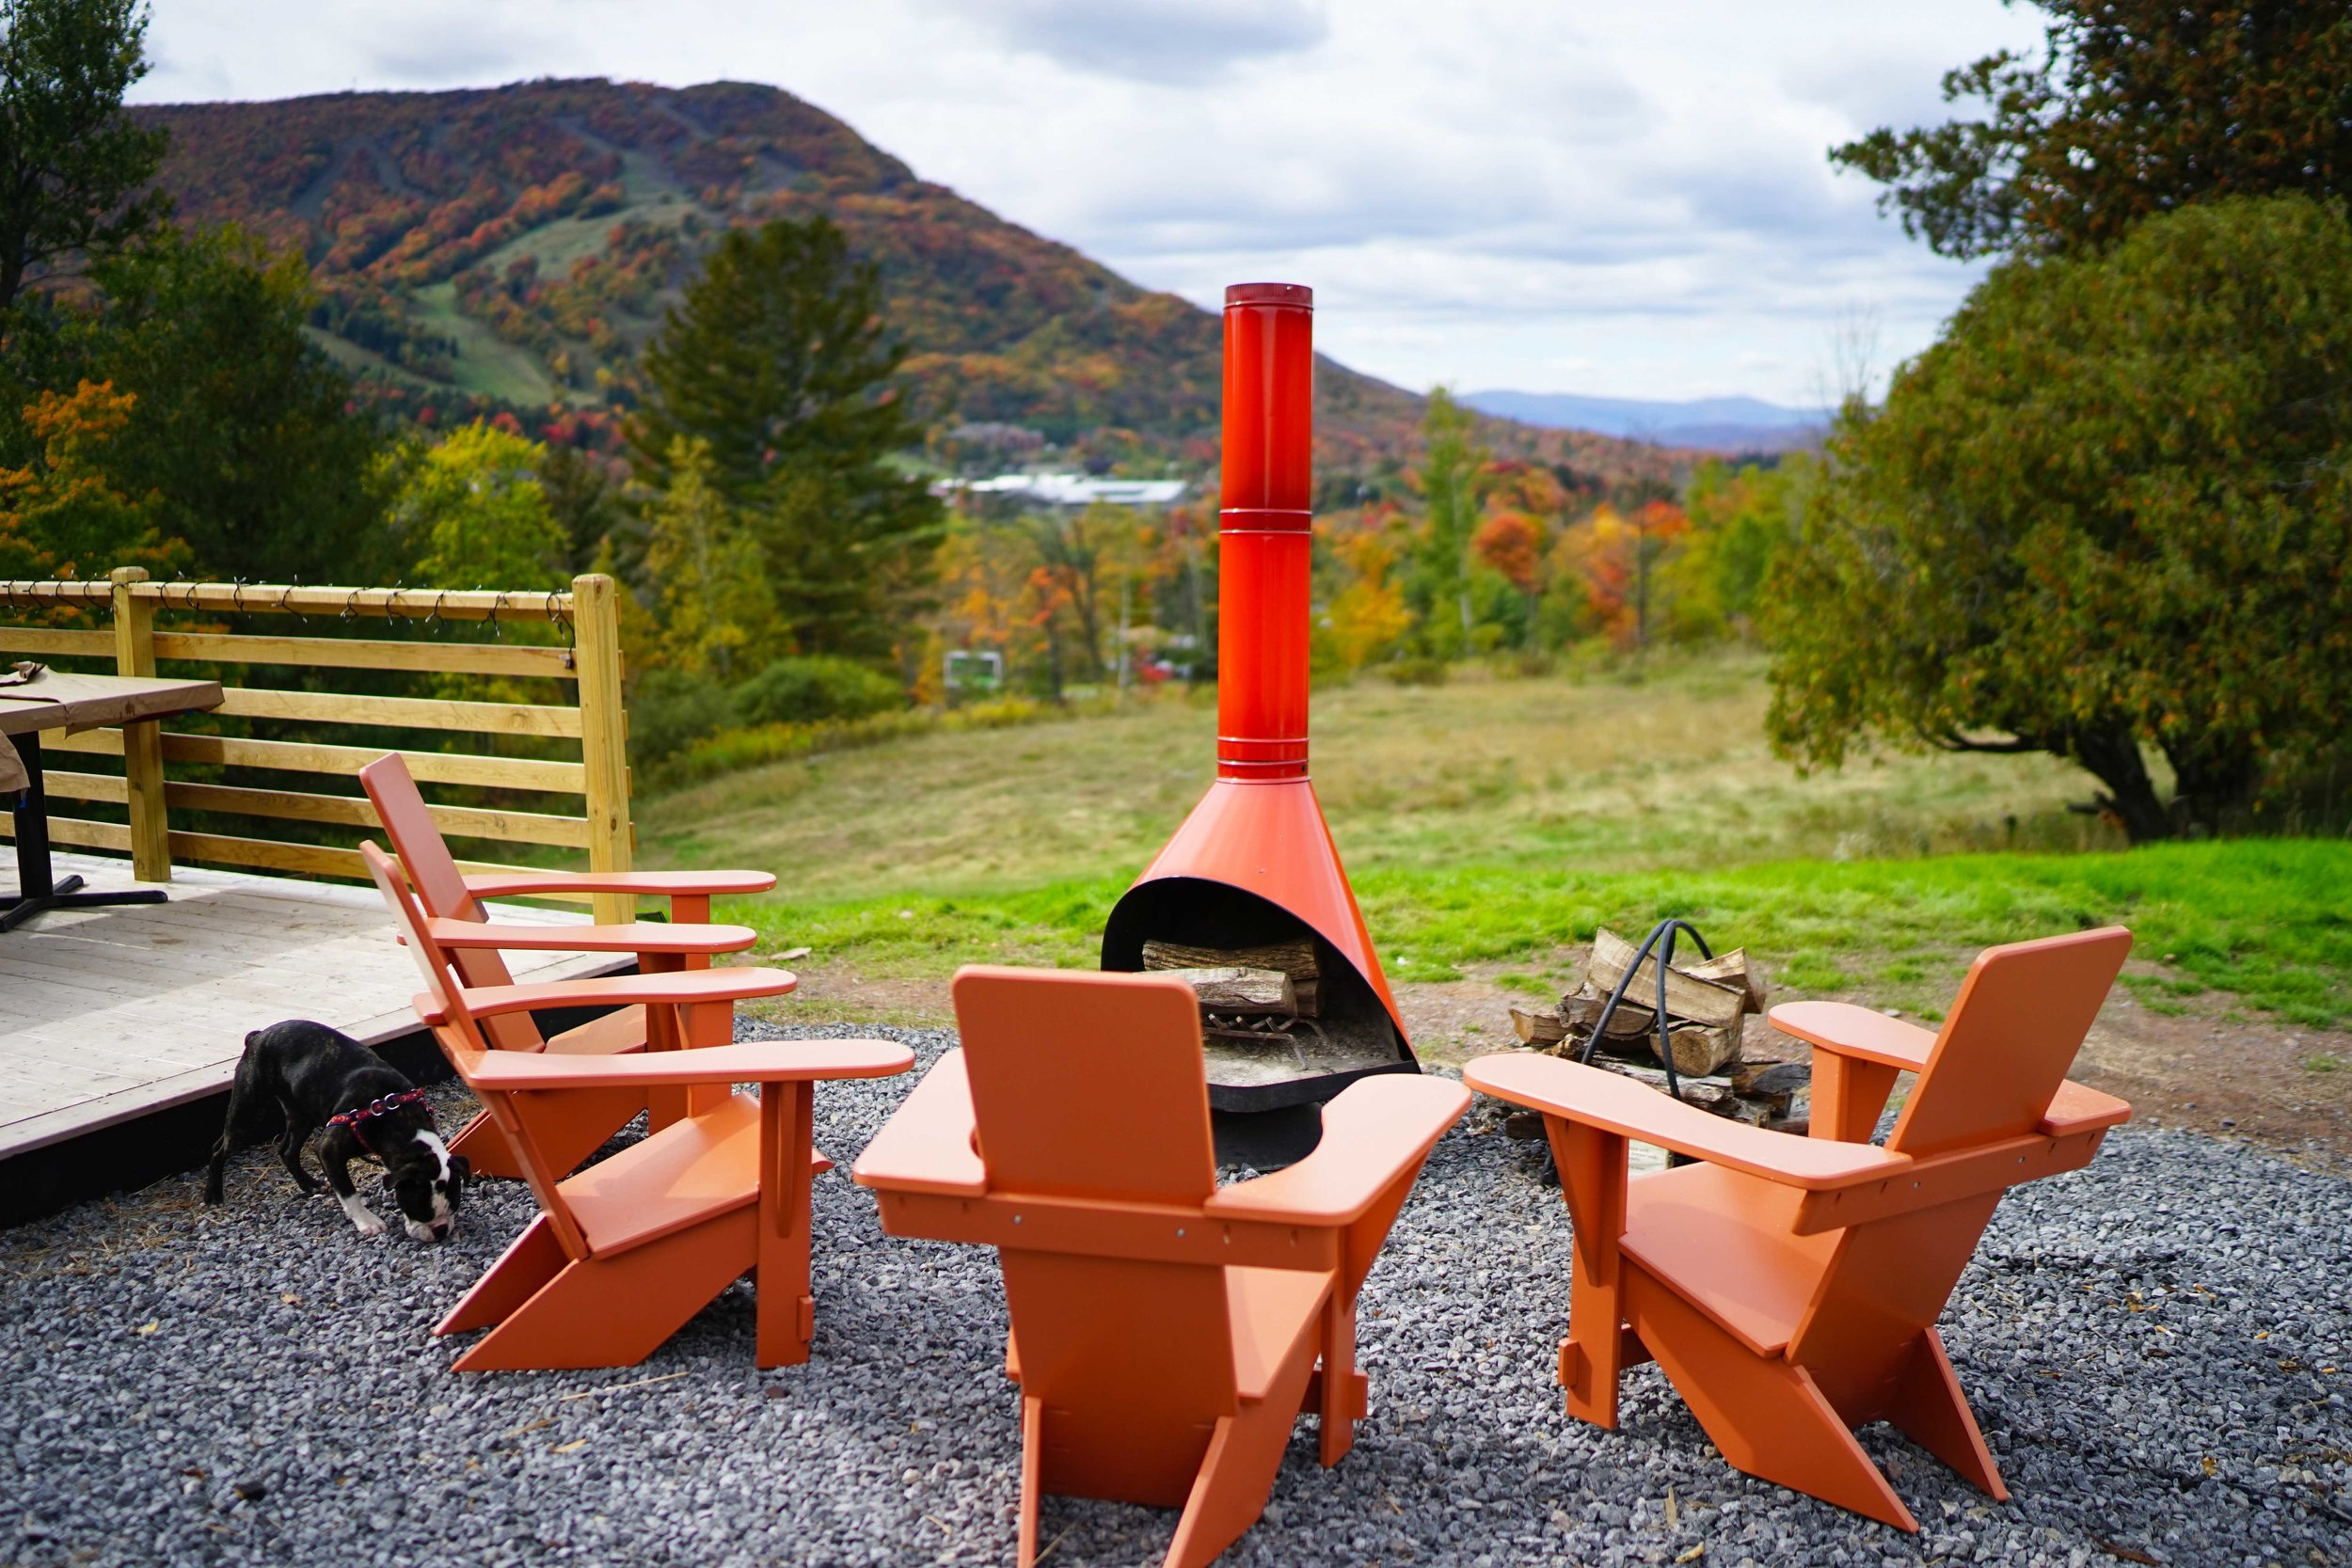 SCL_outdoor_fireplace_SR.JPG